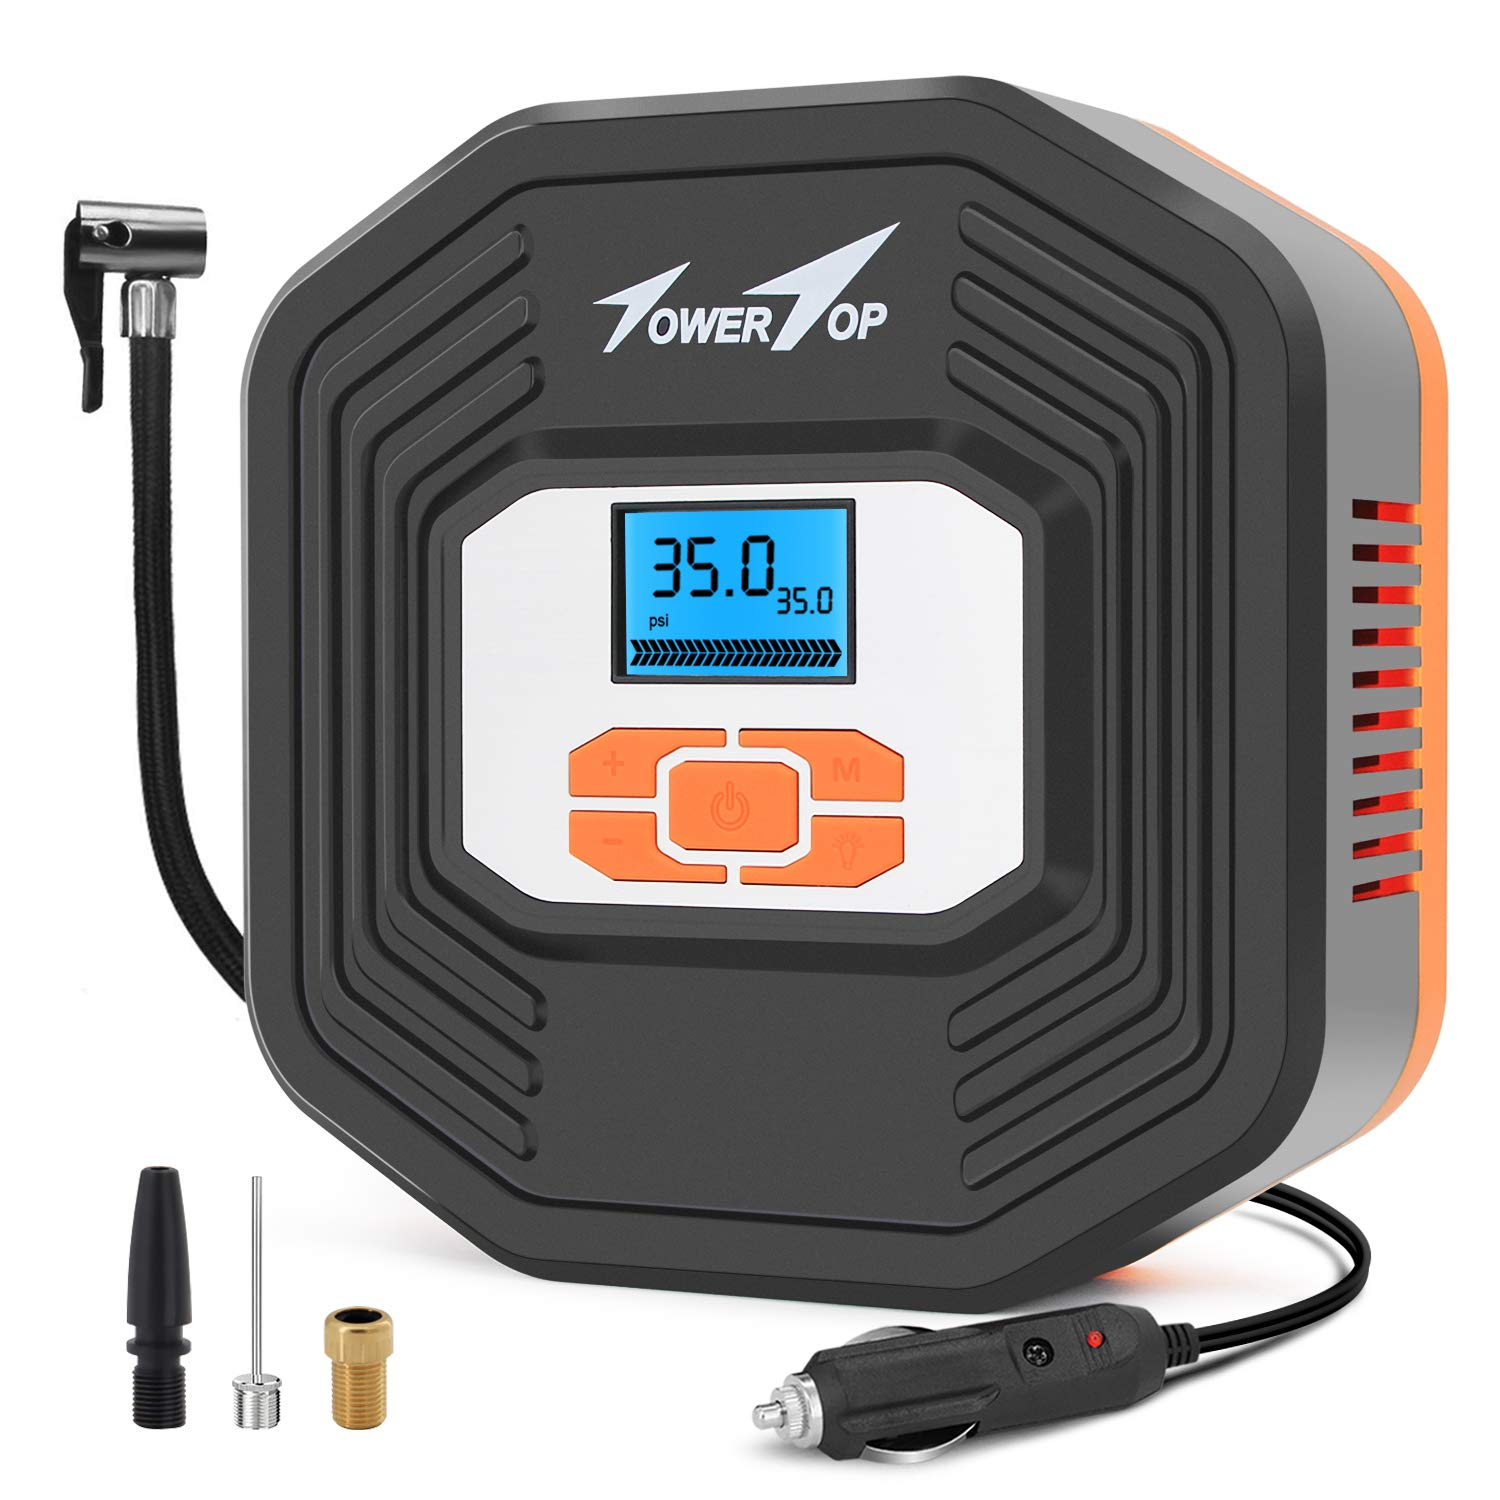 Towertop Digital Tyre Inflator, 12V DC Portable Air Compressor Pump, Car Tire Pump with LED Light and LCD Digital Display for Car, Bicycle, Motorcycle, Basketball and Other Inflatables